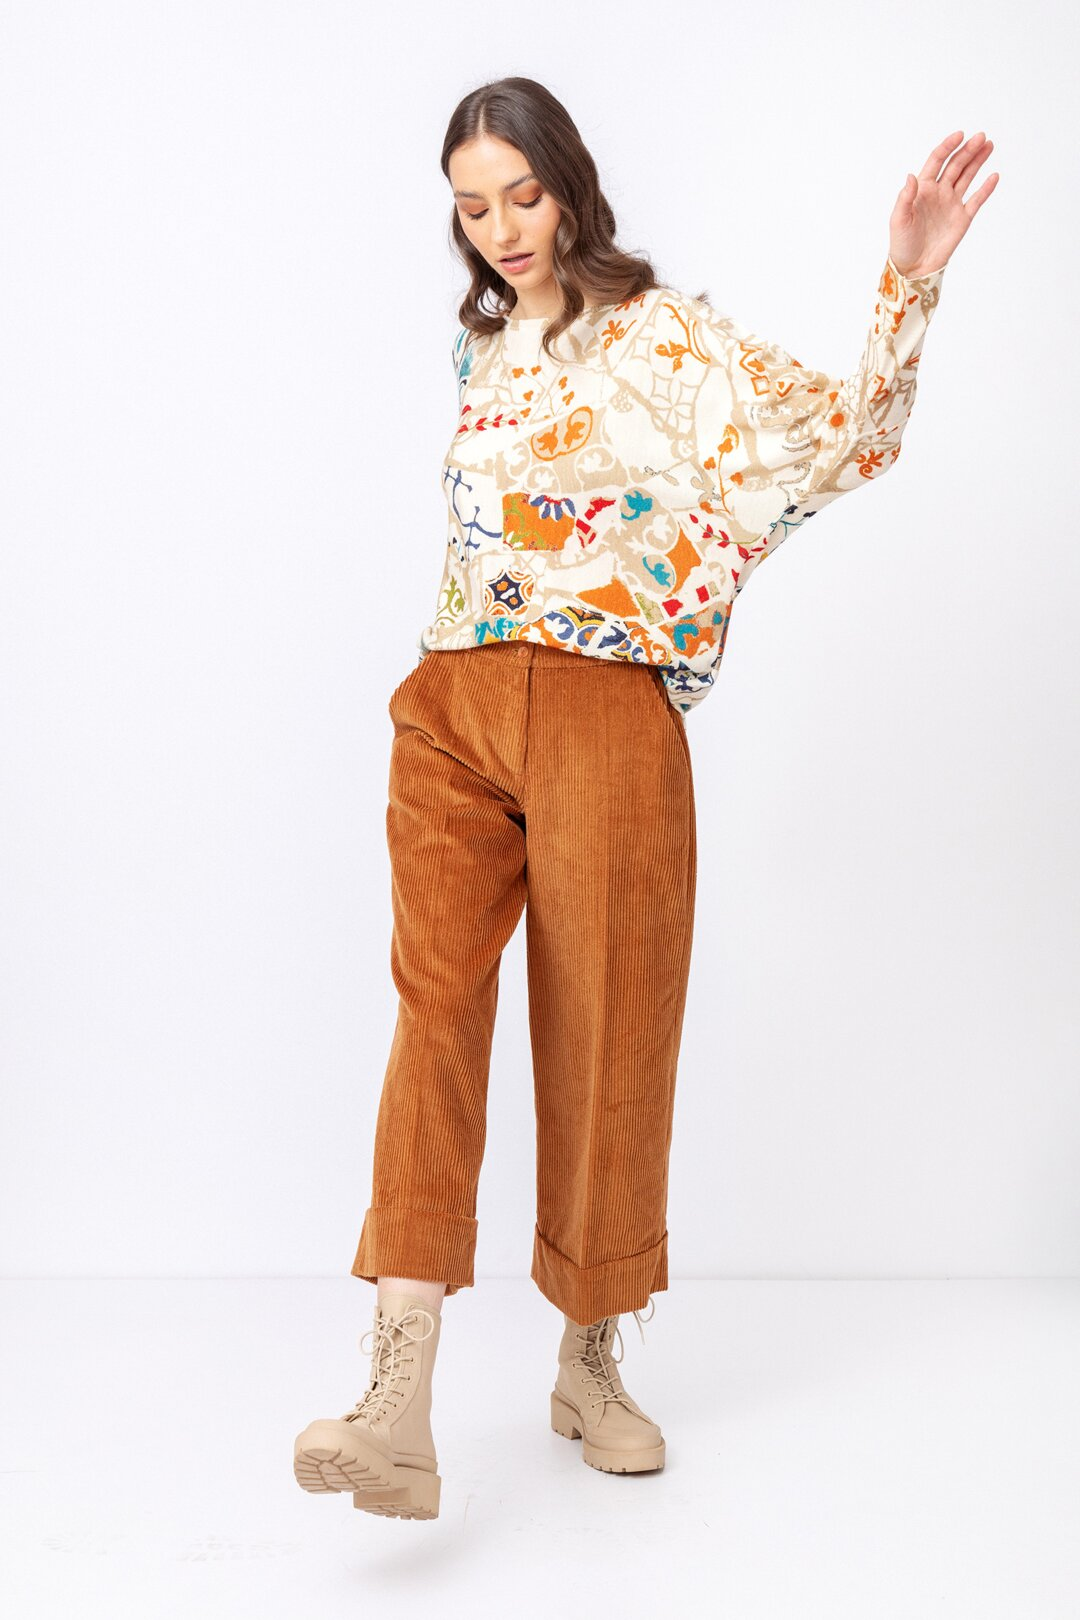 outfit-7c8a0691